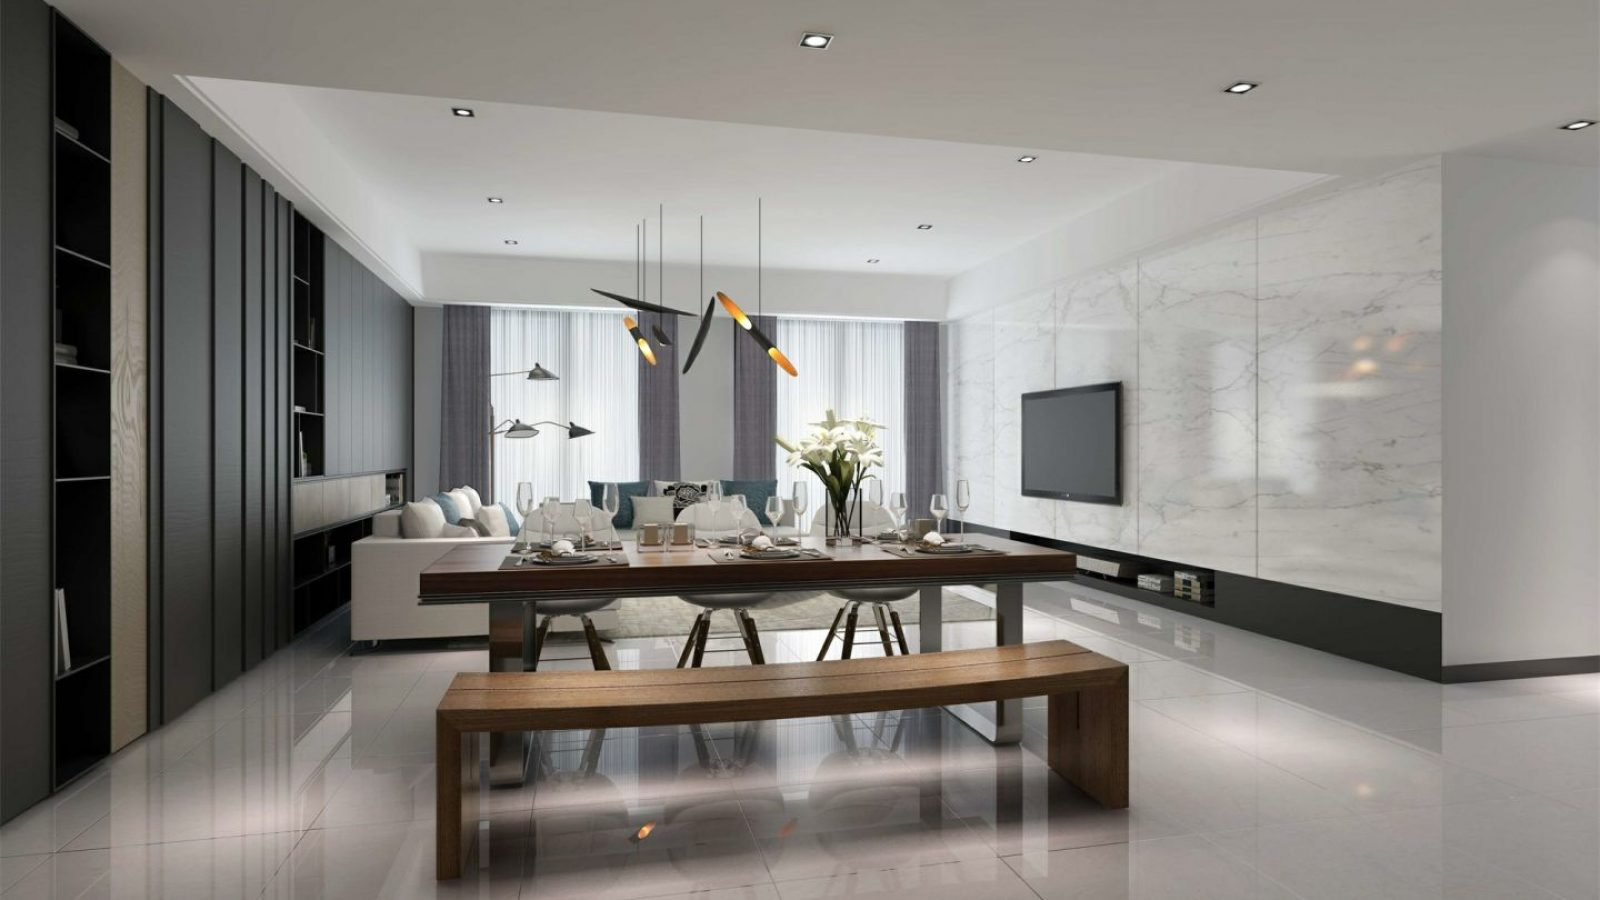 Architectural_Visualization_3D_Rendering_AIMIRCG.COM_100790